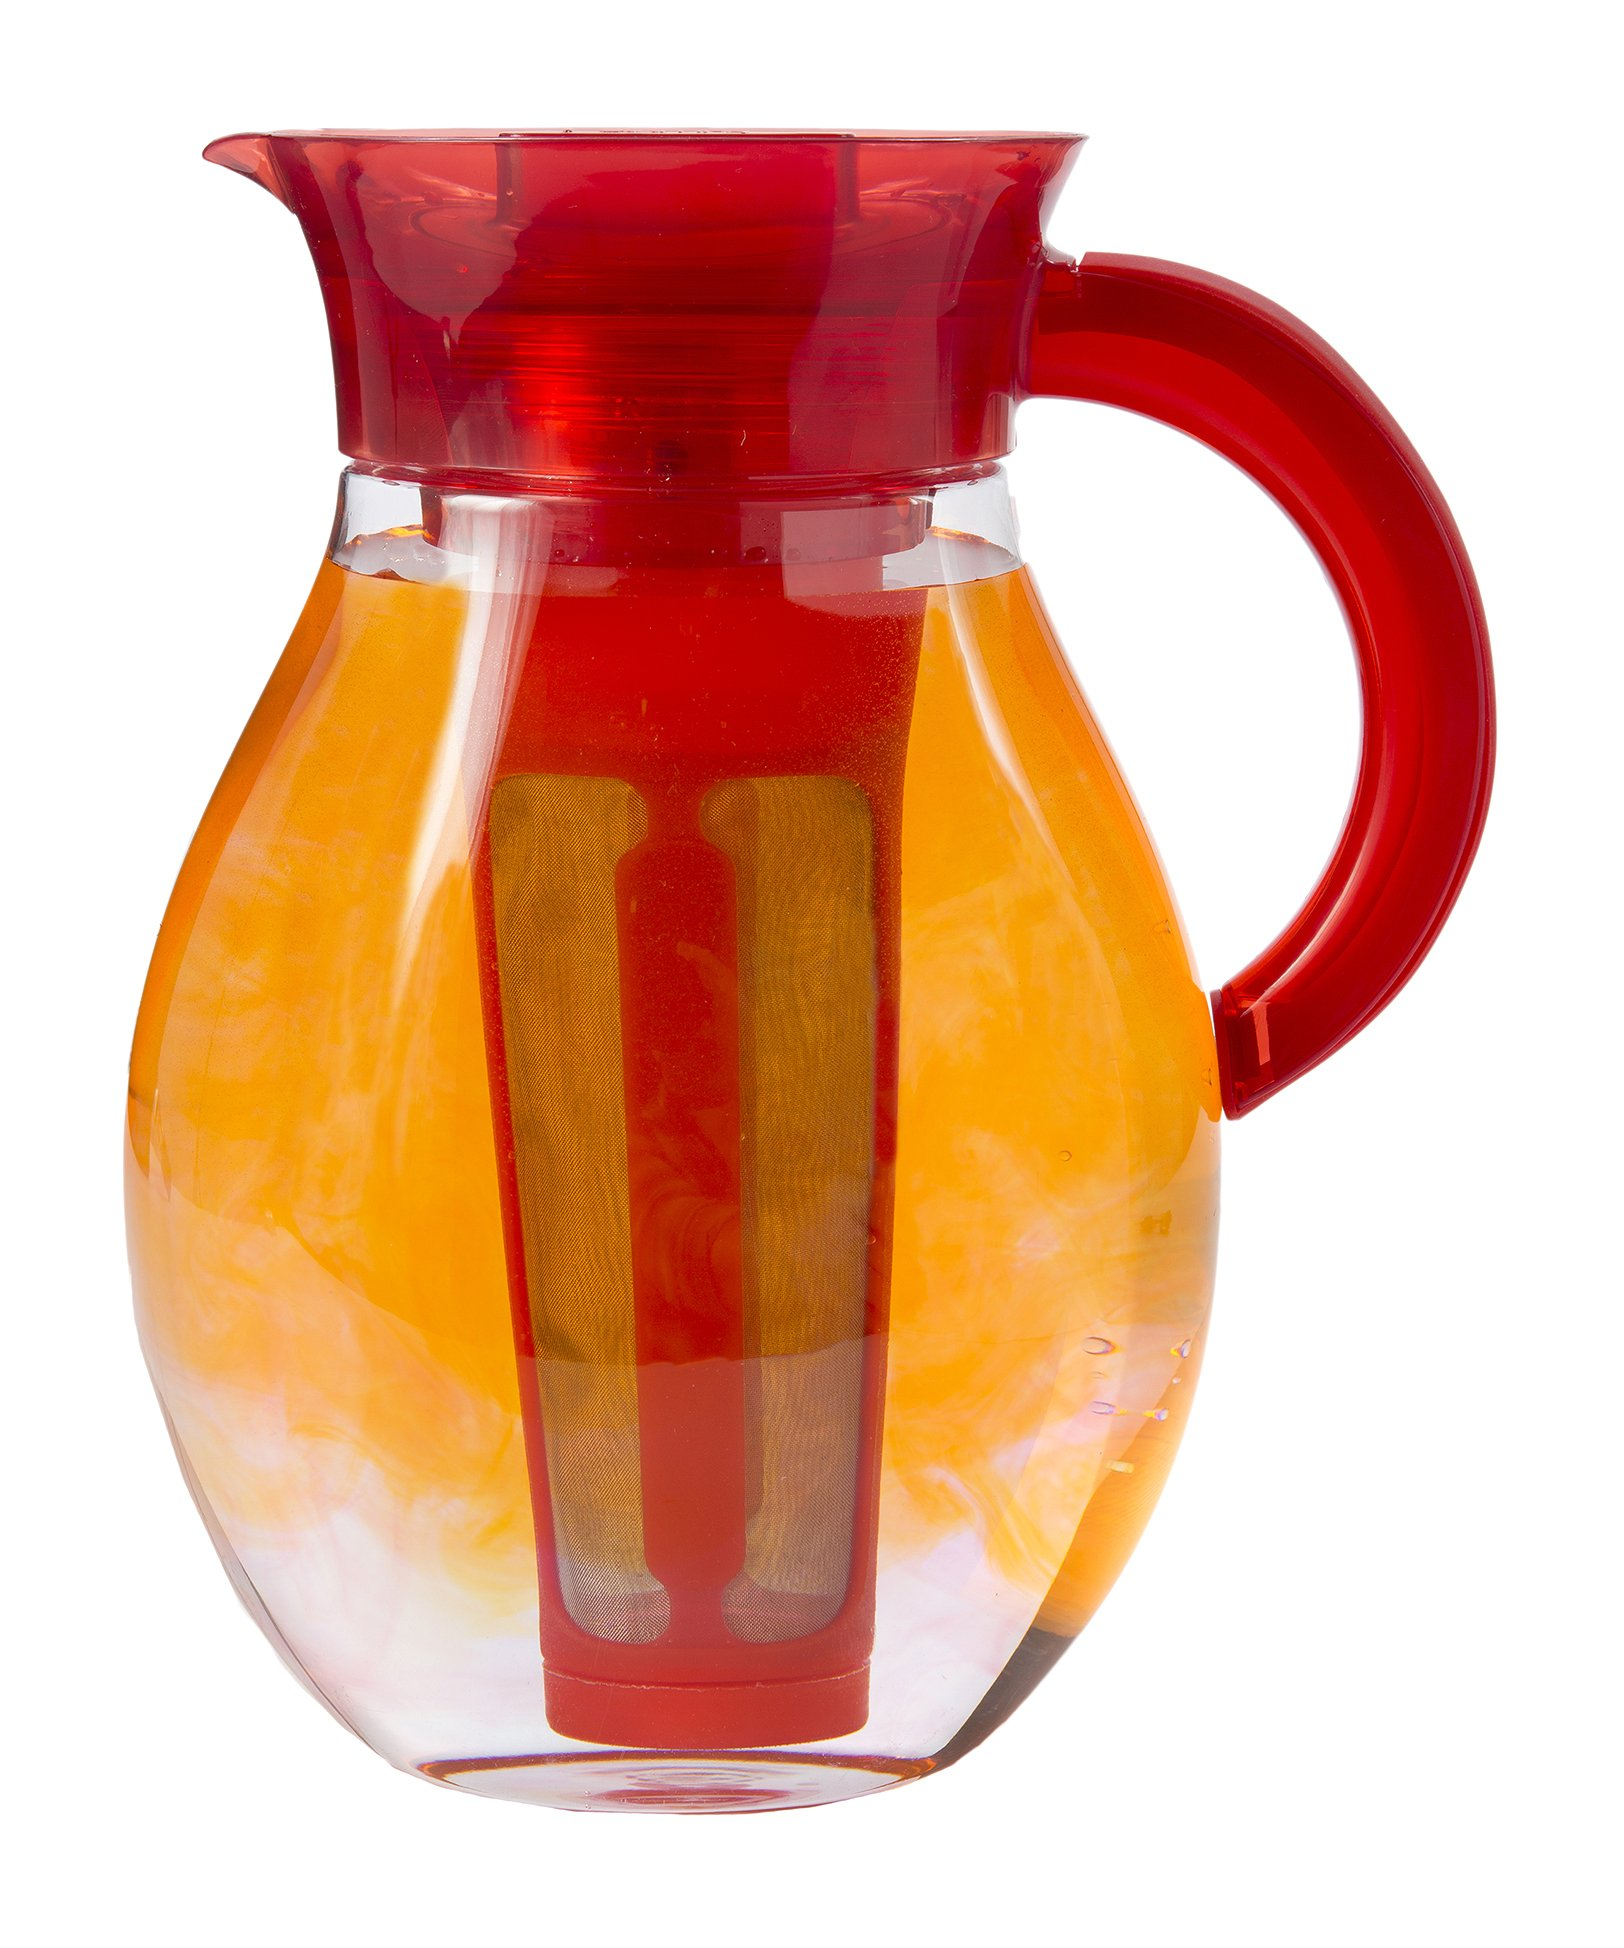 Primula The Big Iced Tea Maker - 1 Gallon Beverage Pitcher, Red